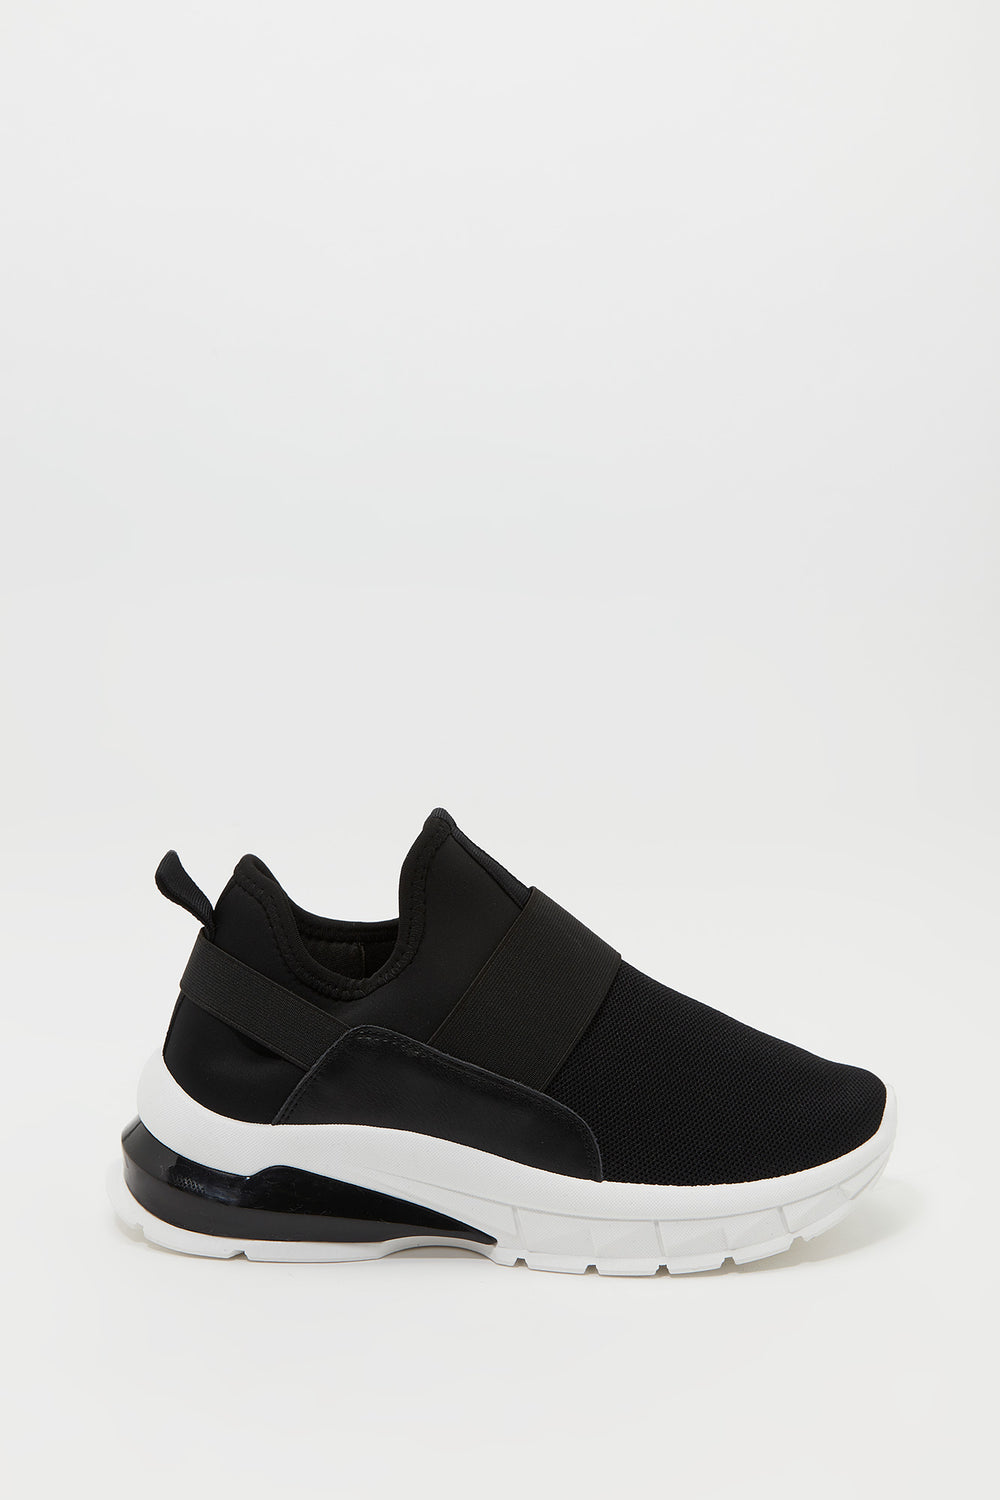 Sommer Ray Knit Laceless Sneaker Black